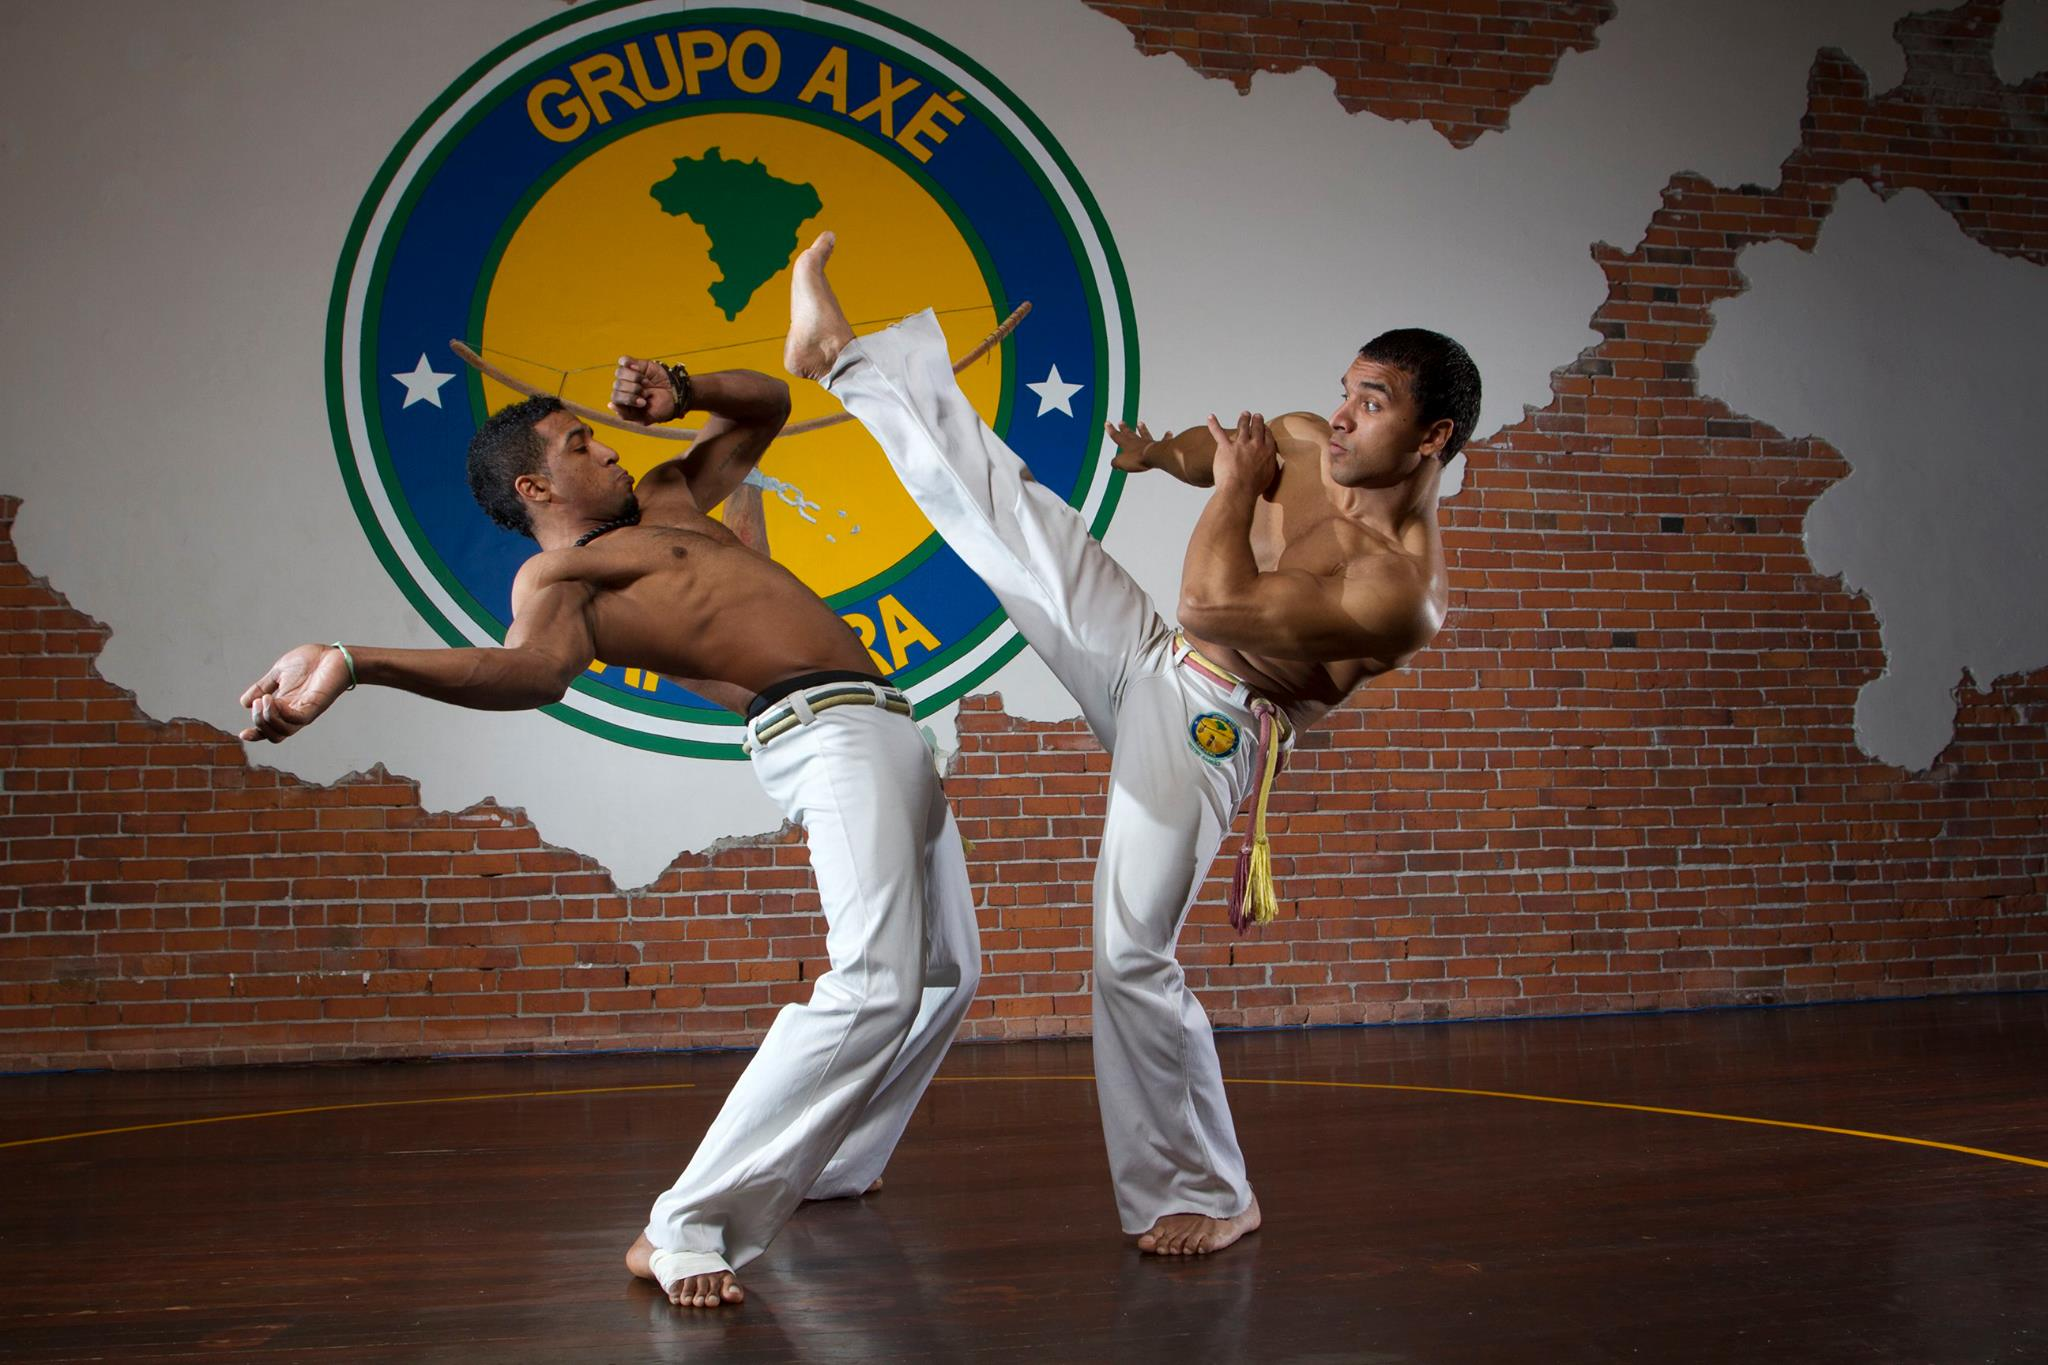 Blog__25_Capoeira_photo.jpg